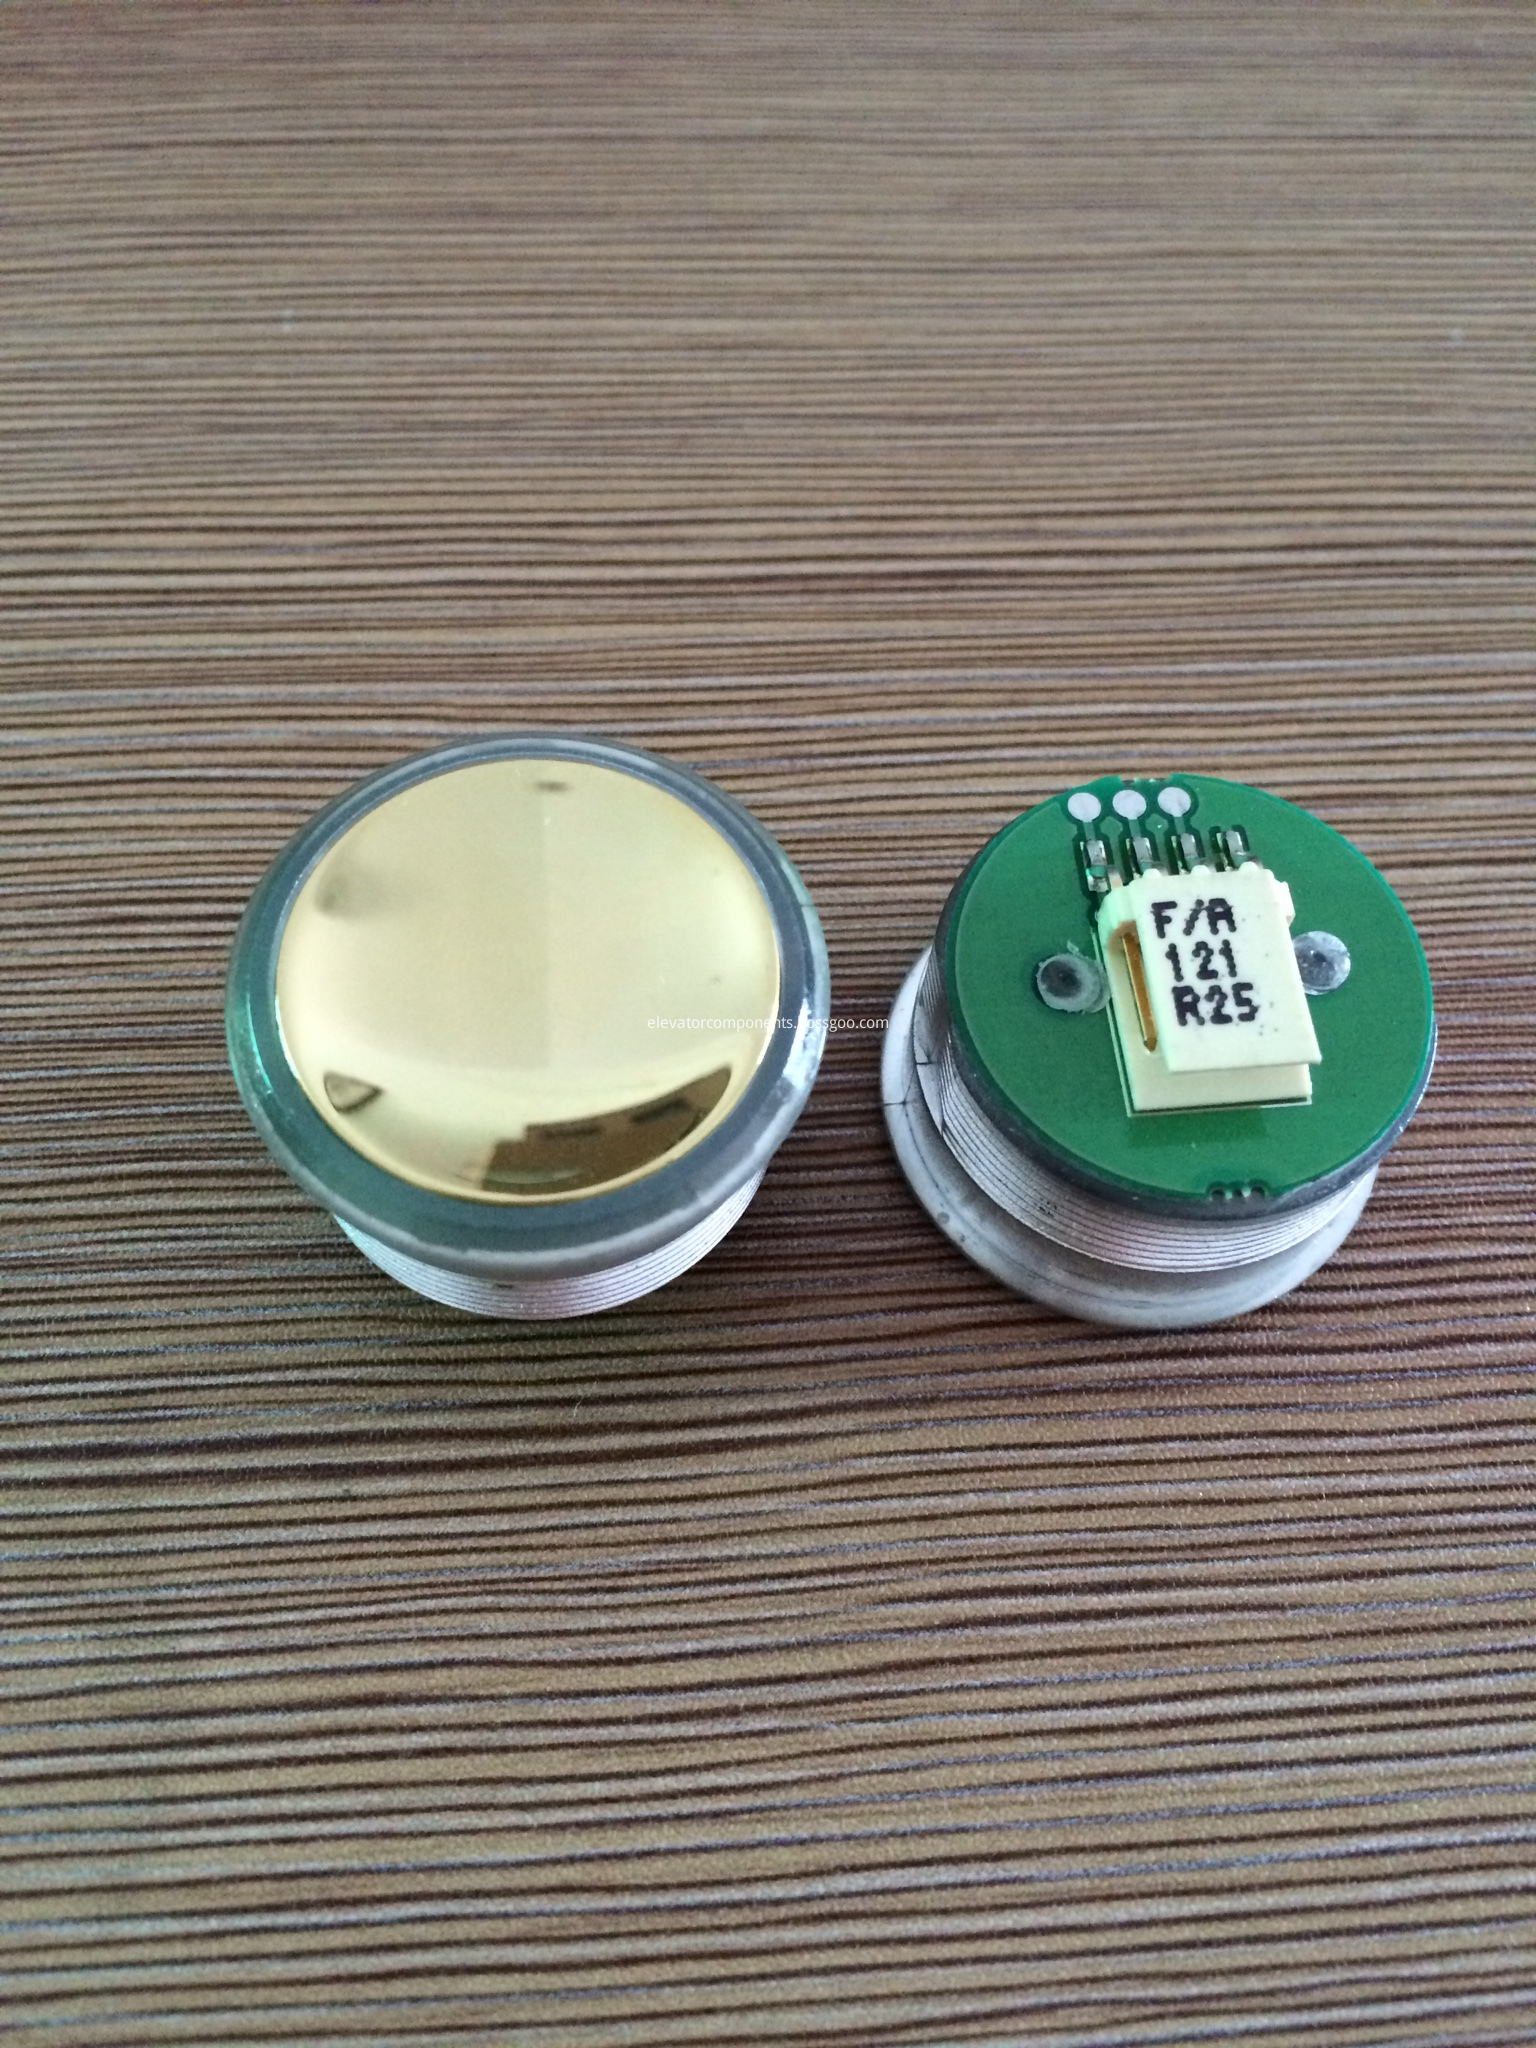 Golden Push Button FAA25090A121 for OTIS 2000 Elevators